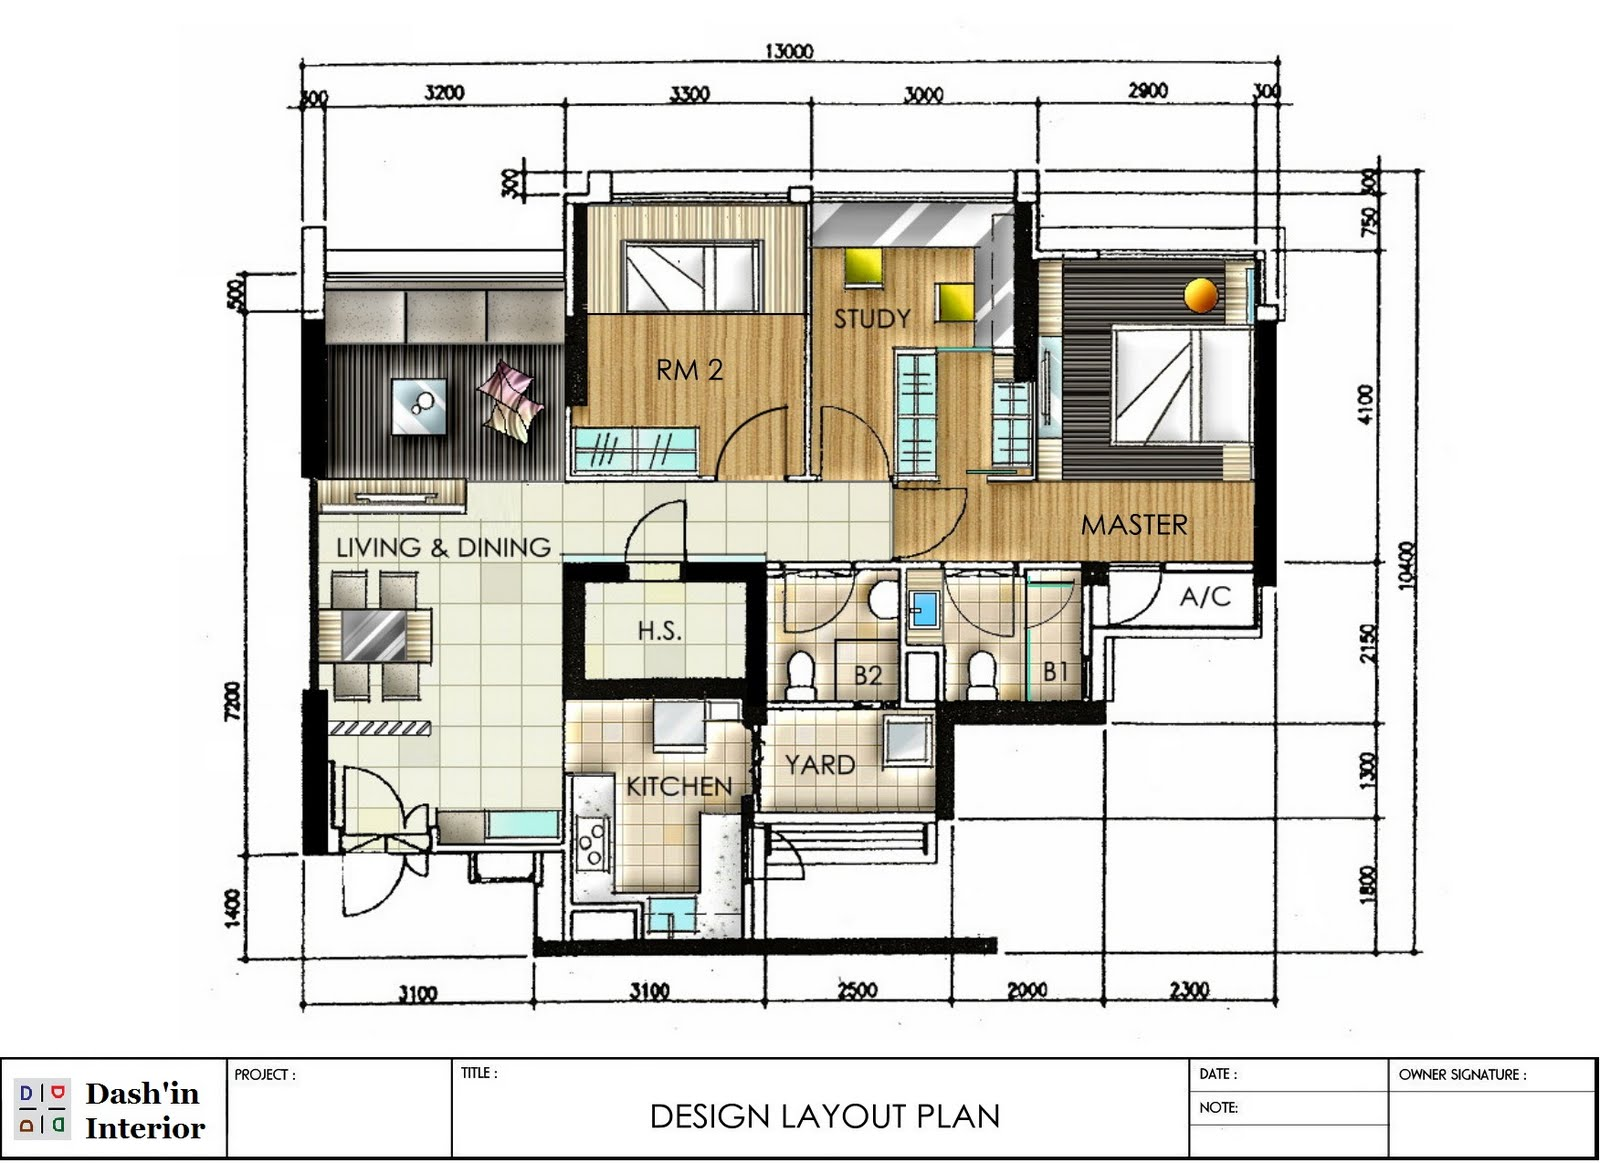 Dash 39 in interior hand drawn designs floor plan layout for Home architecture floor plans